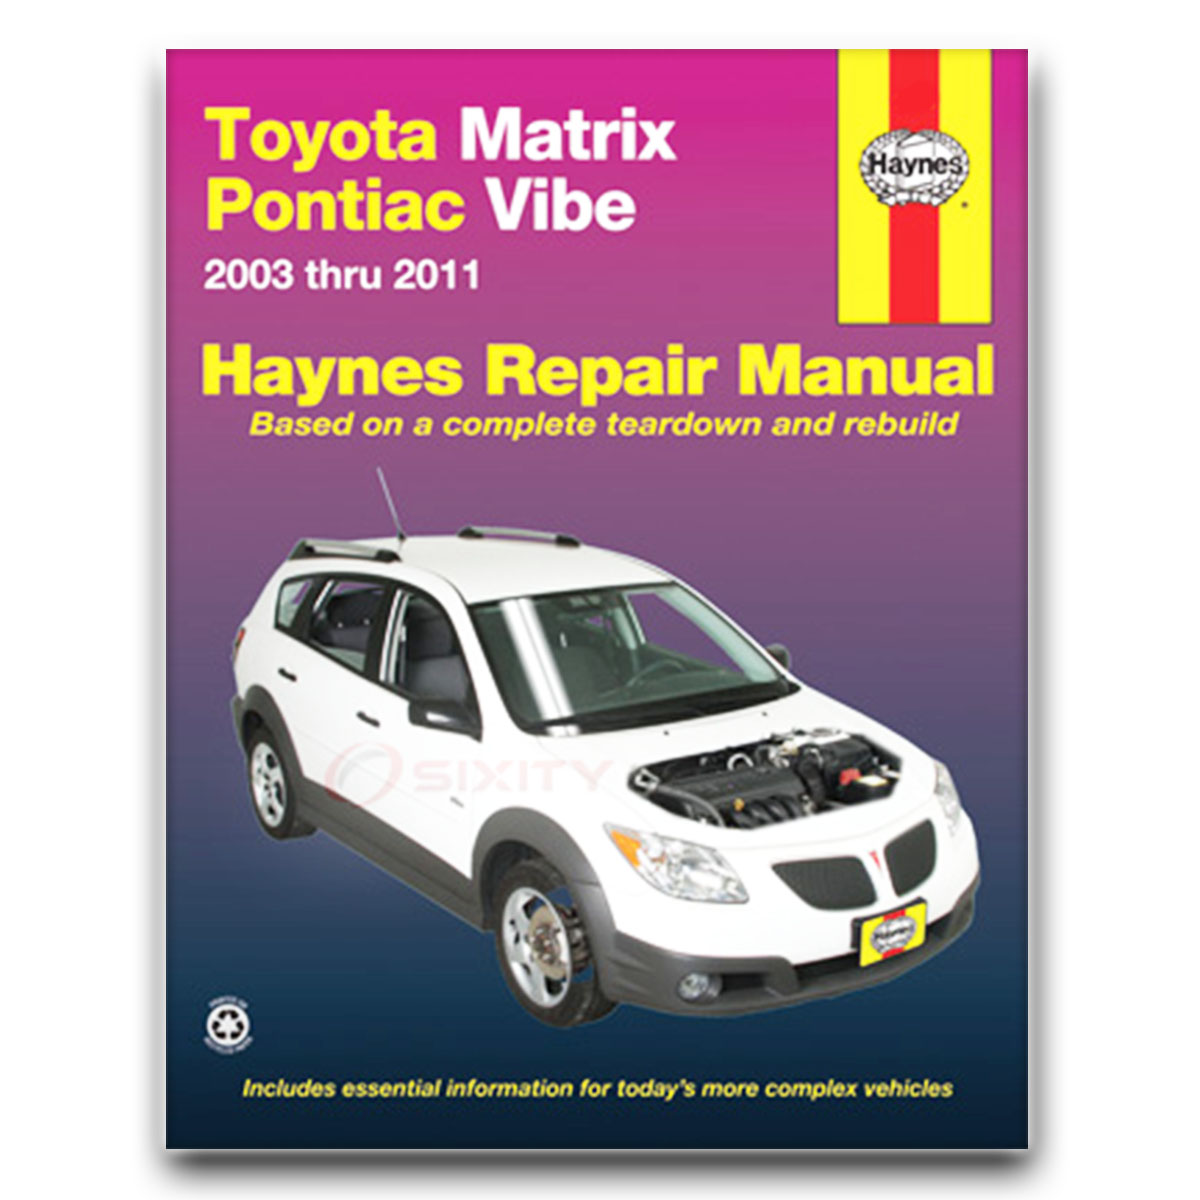 haynes toyota matrix pontiac vibe 03 11 repair manual 92060 shop rh ebay com 2003 Toyota Matrix Short Shifter 2003 toyota matrix xrs repair manual